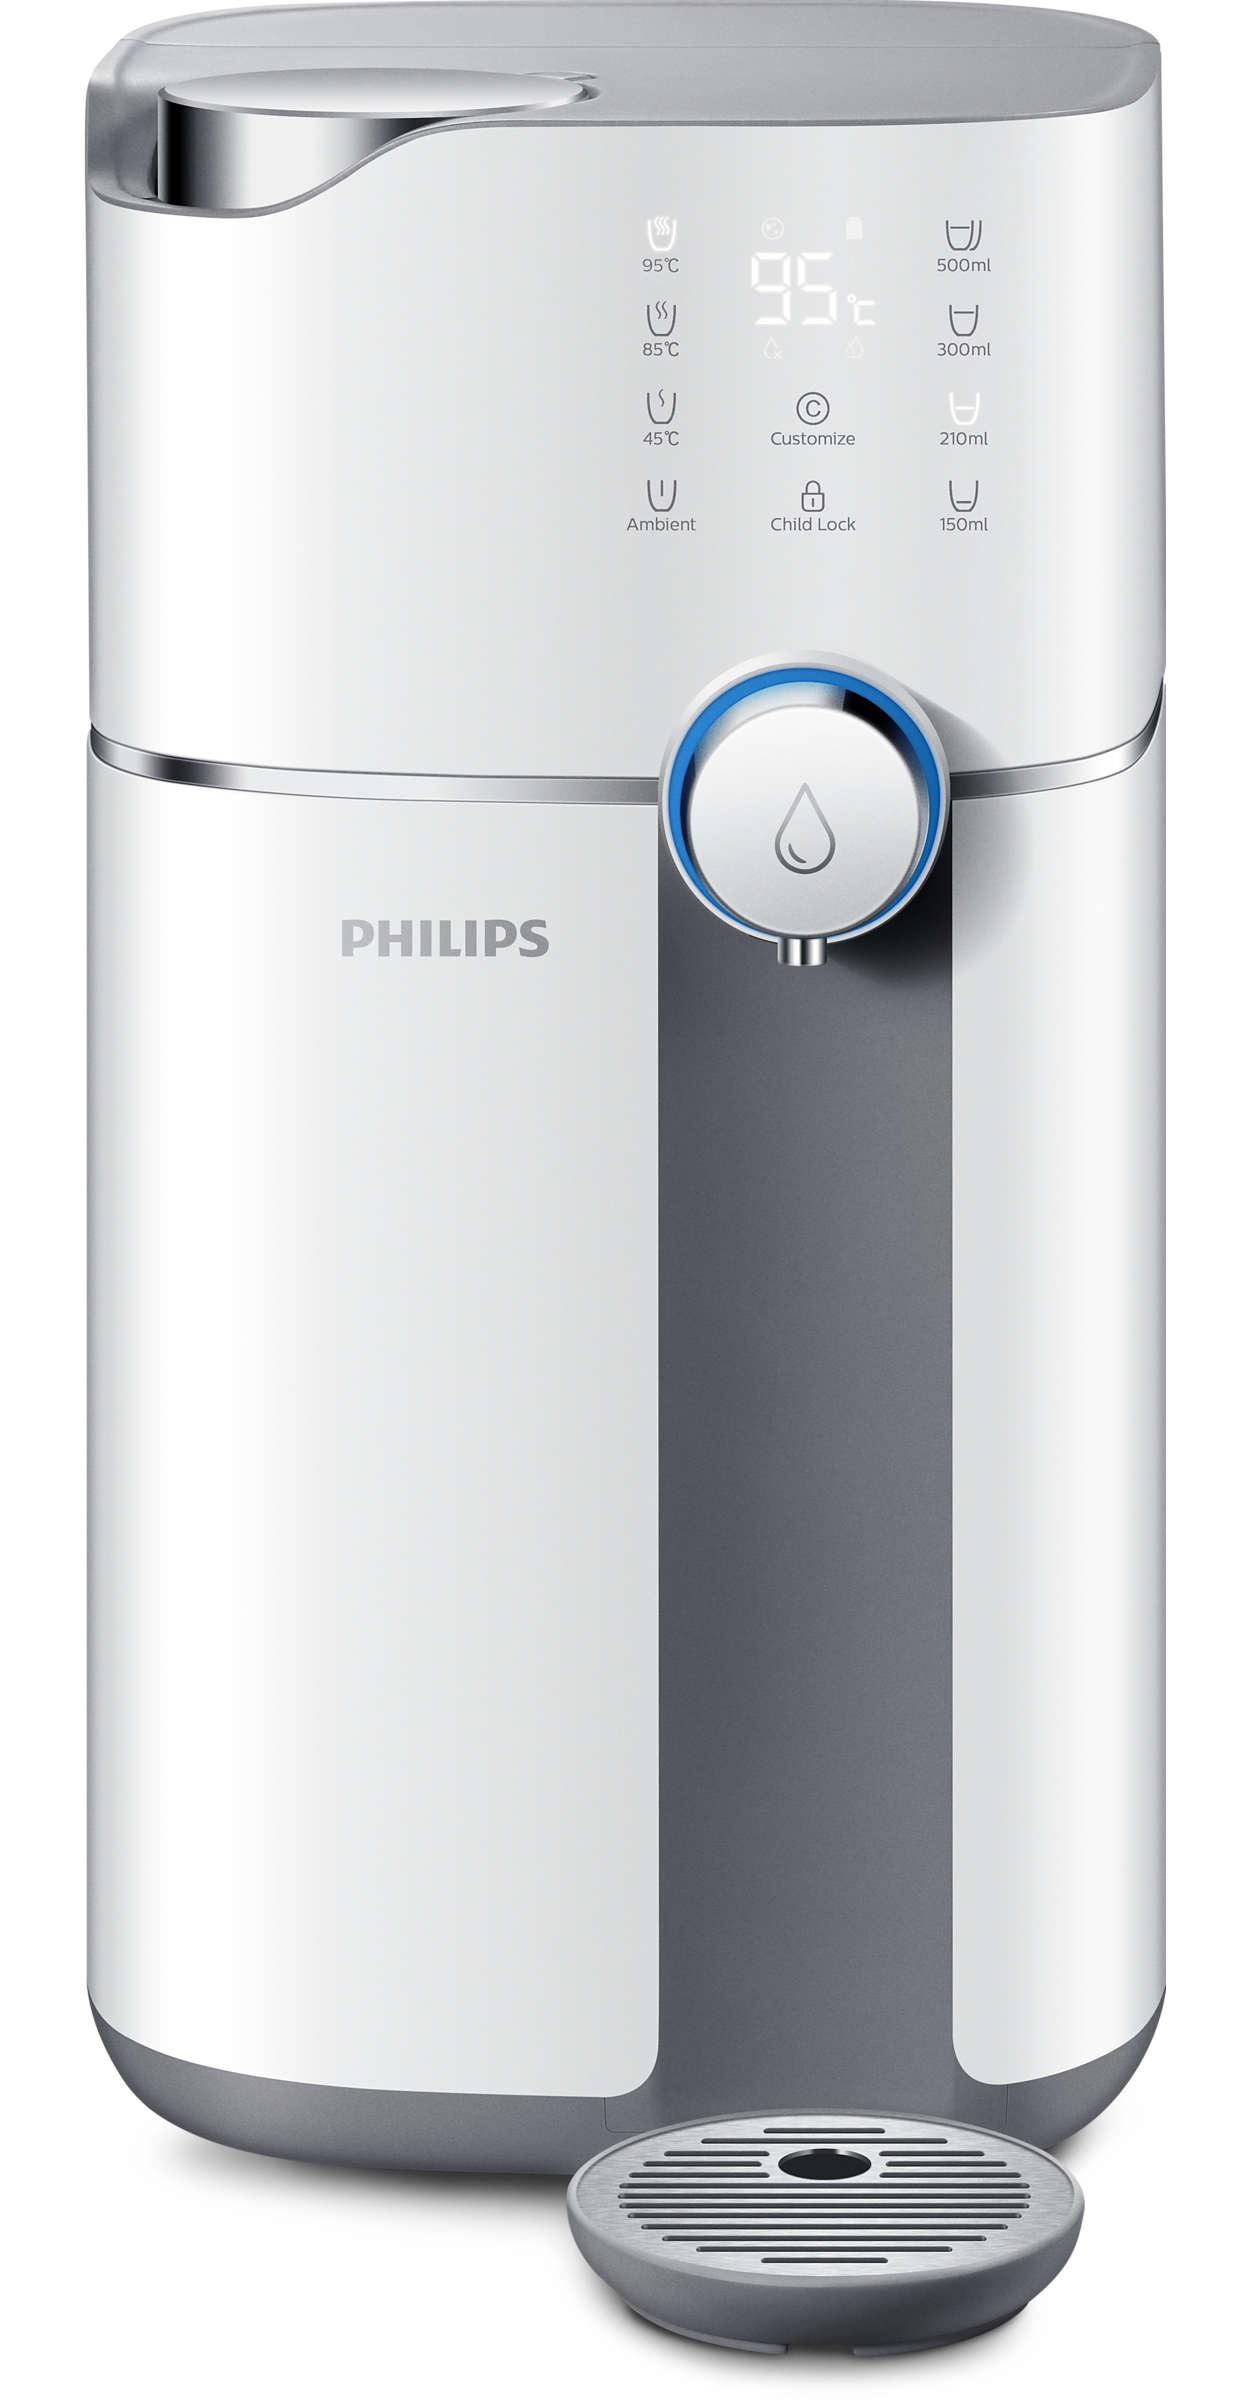 Purified water of various temperature